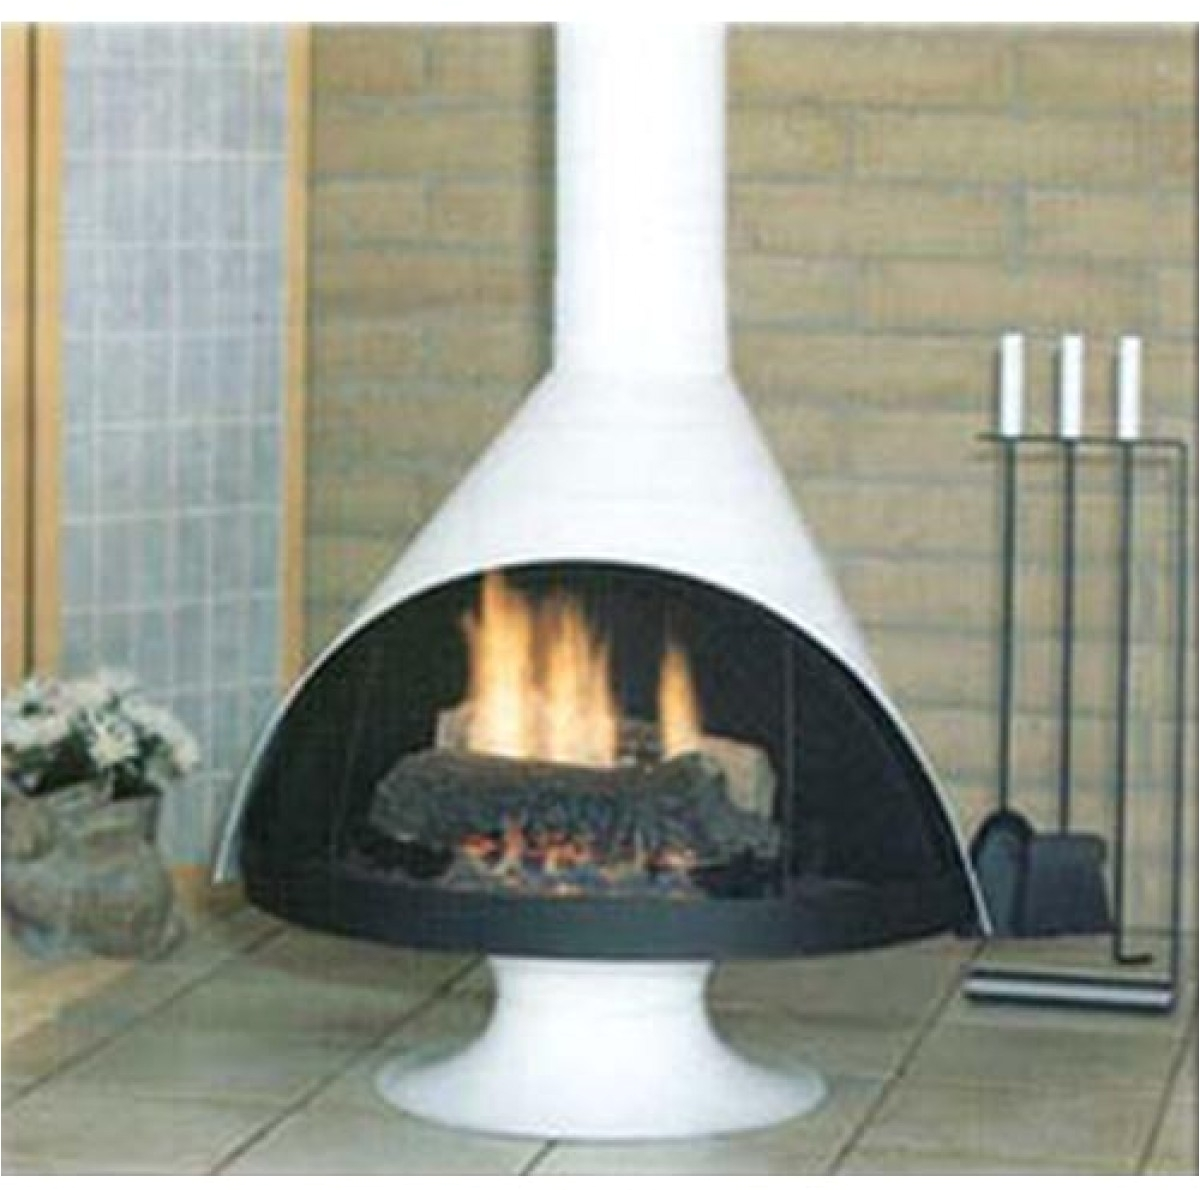 Preway Fireplace Luxury Preway Fireplace for Sale Canada